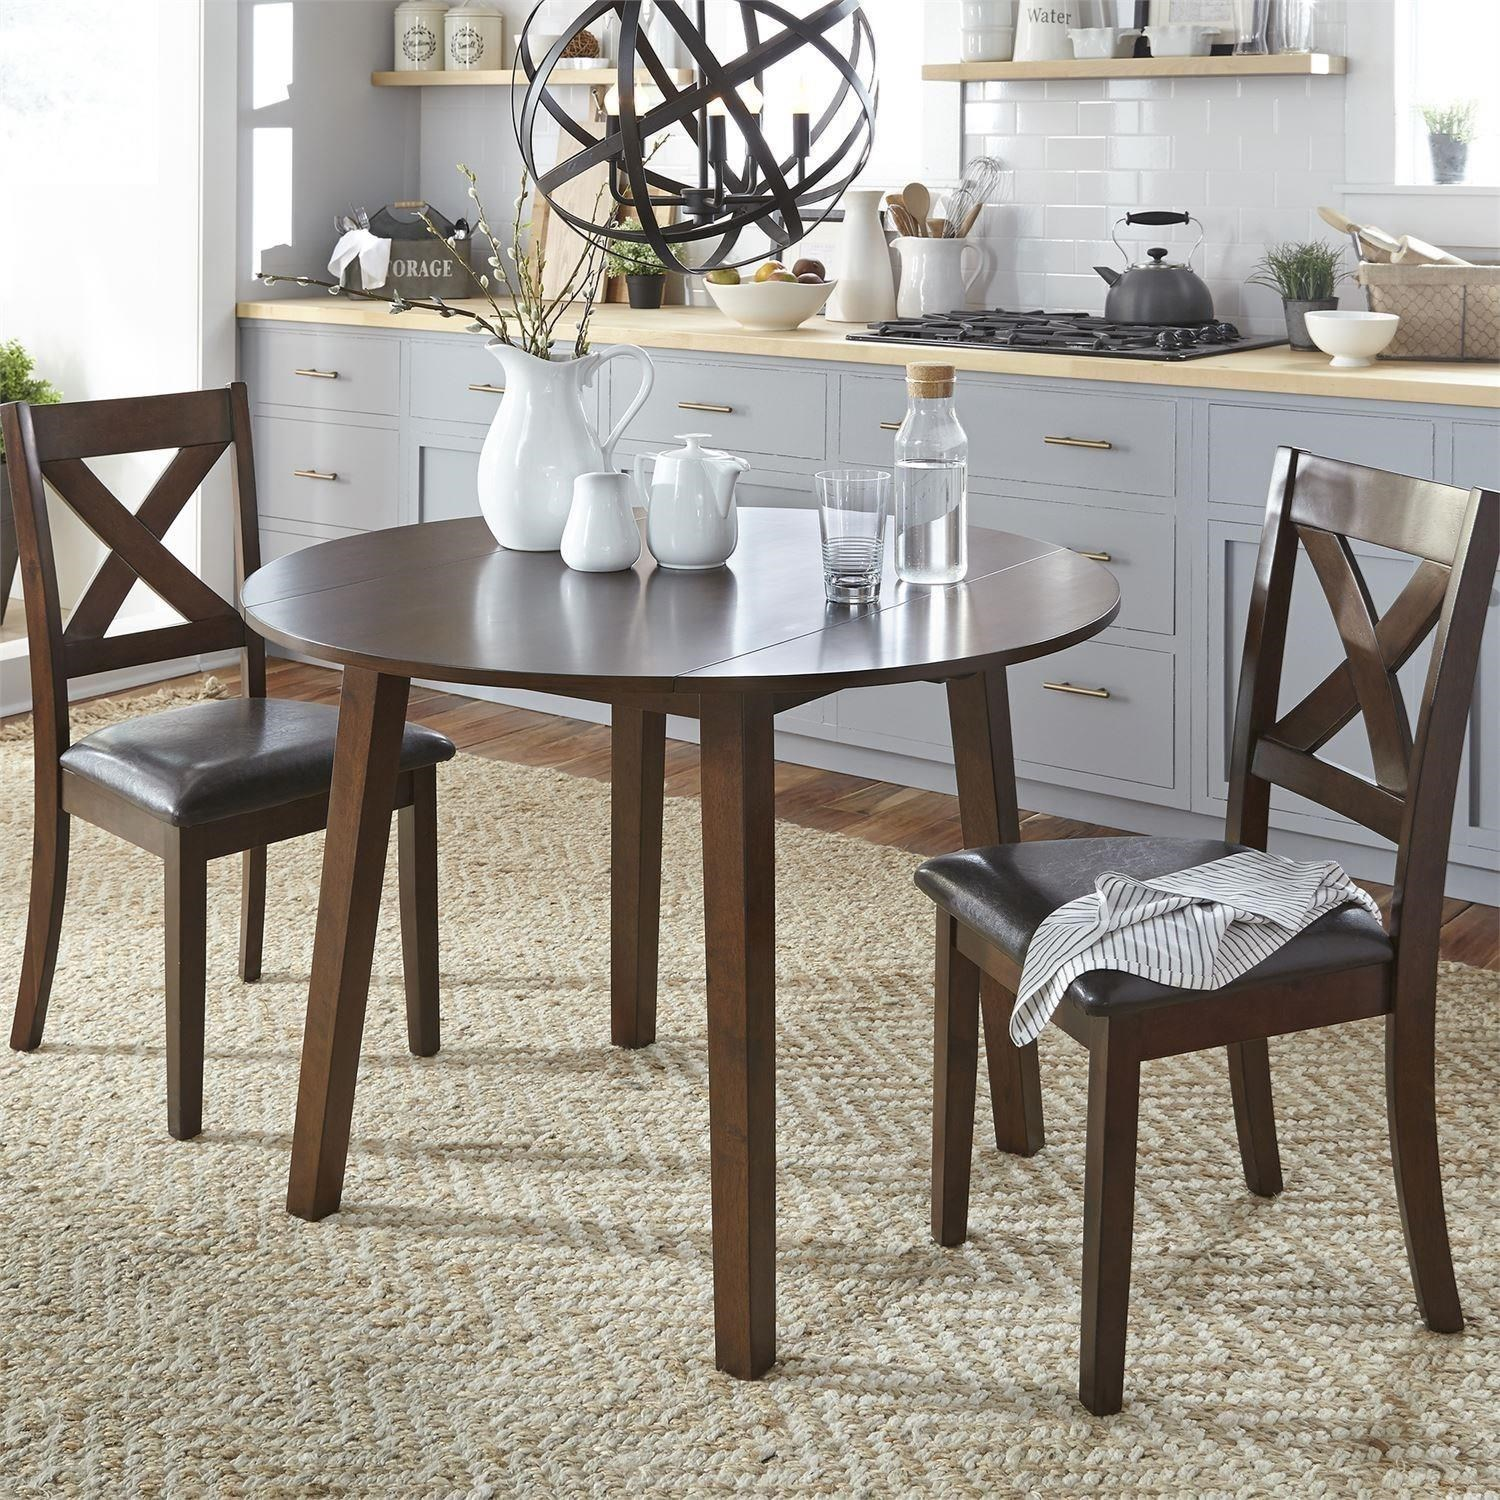 Thornton 3 Piece Drop Leaf Table Set by Liberty Furniture at Upper Room Home Furnishings